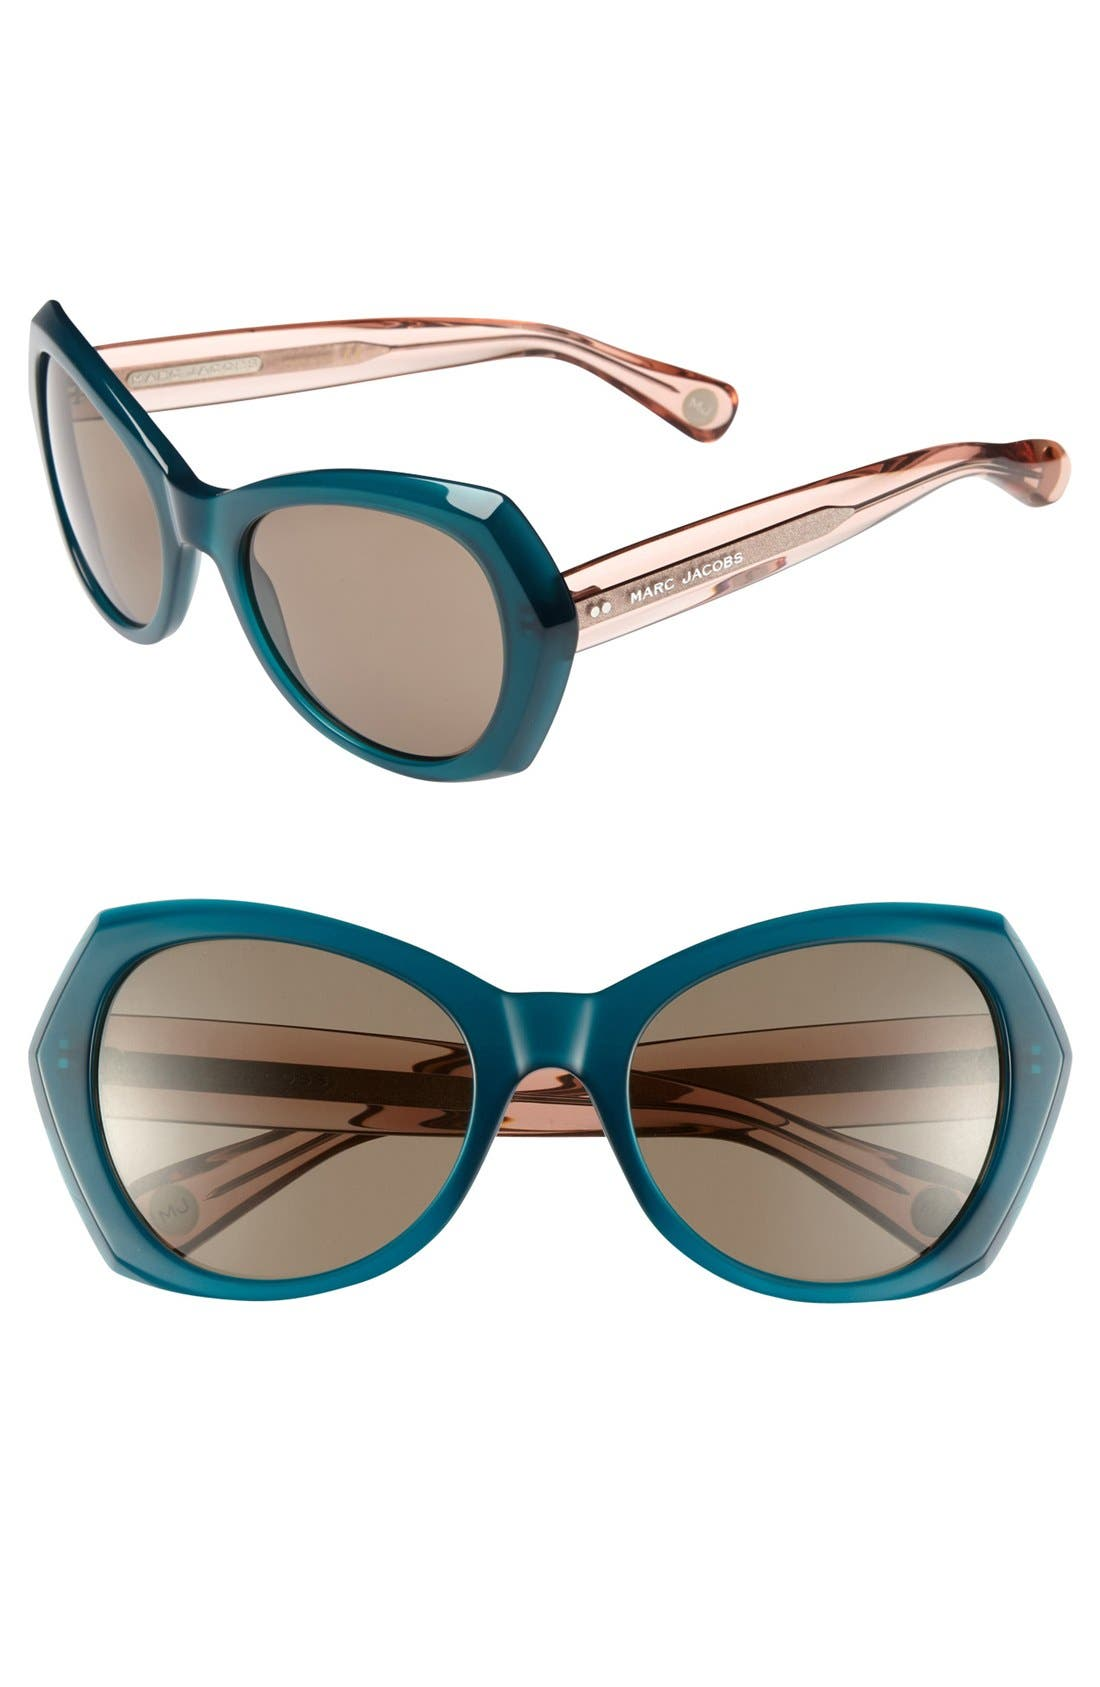 Main Image - MARC JACOBS 56mm Sunglasses